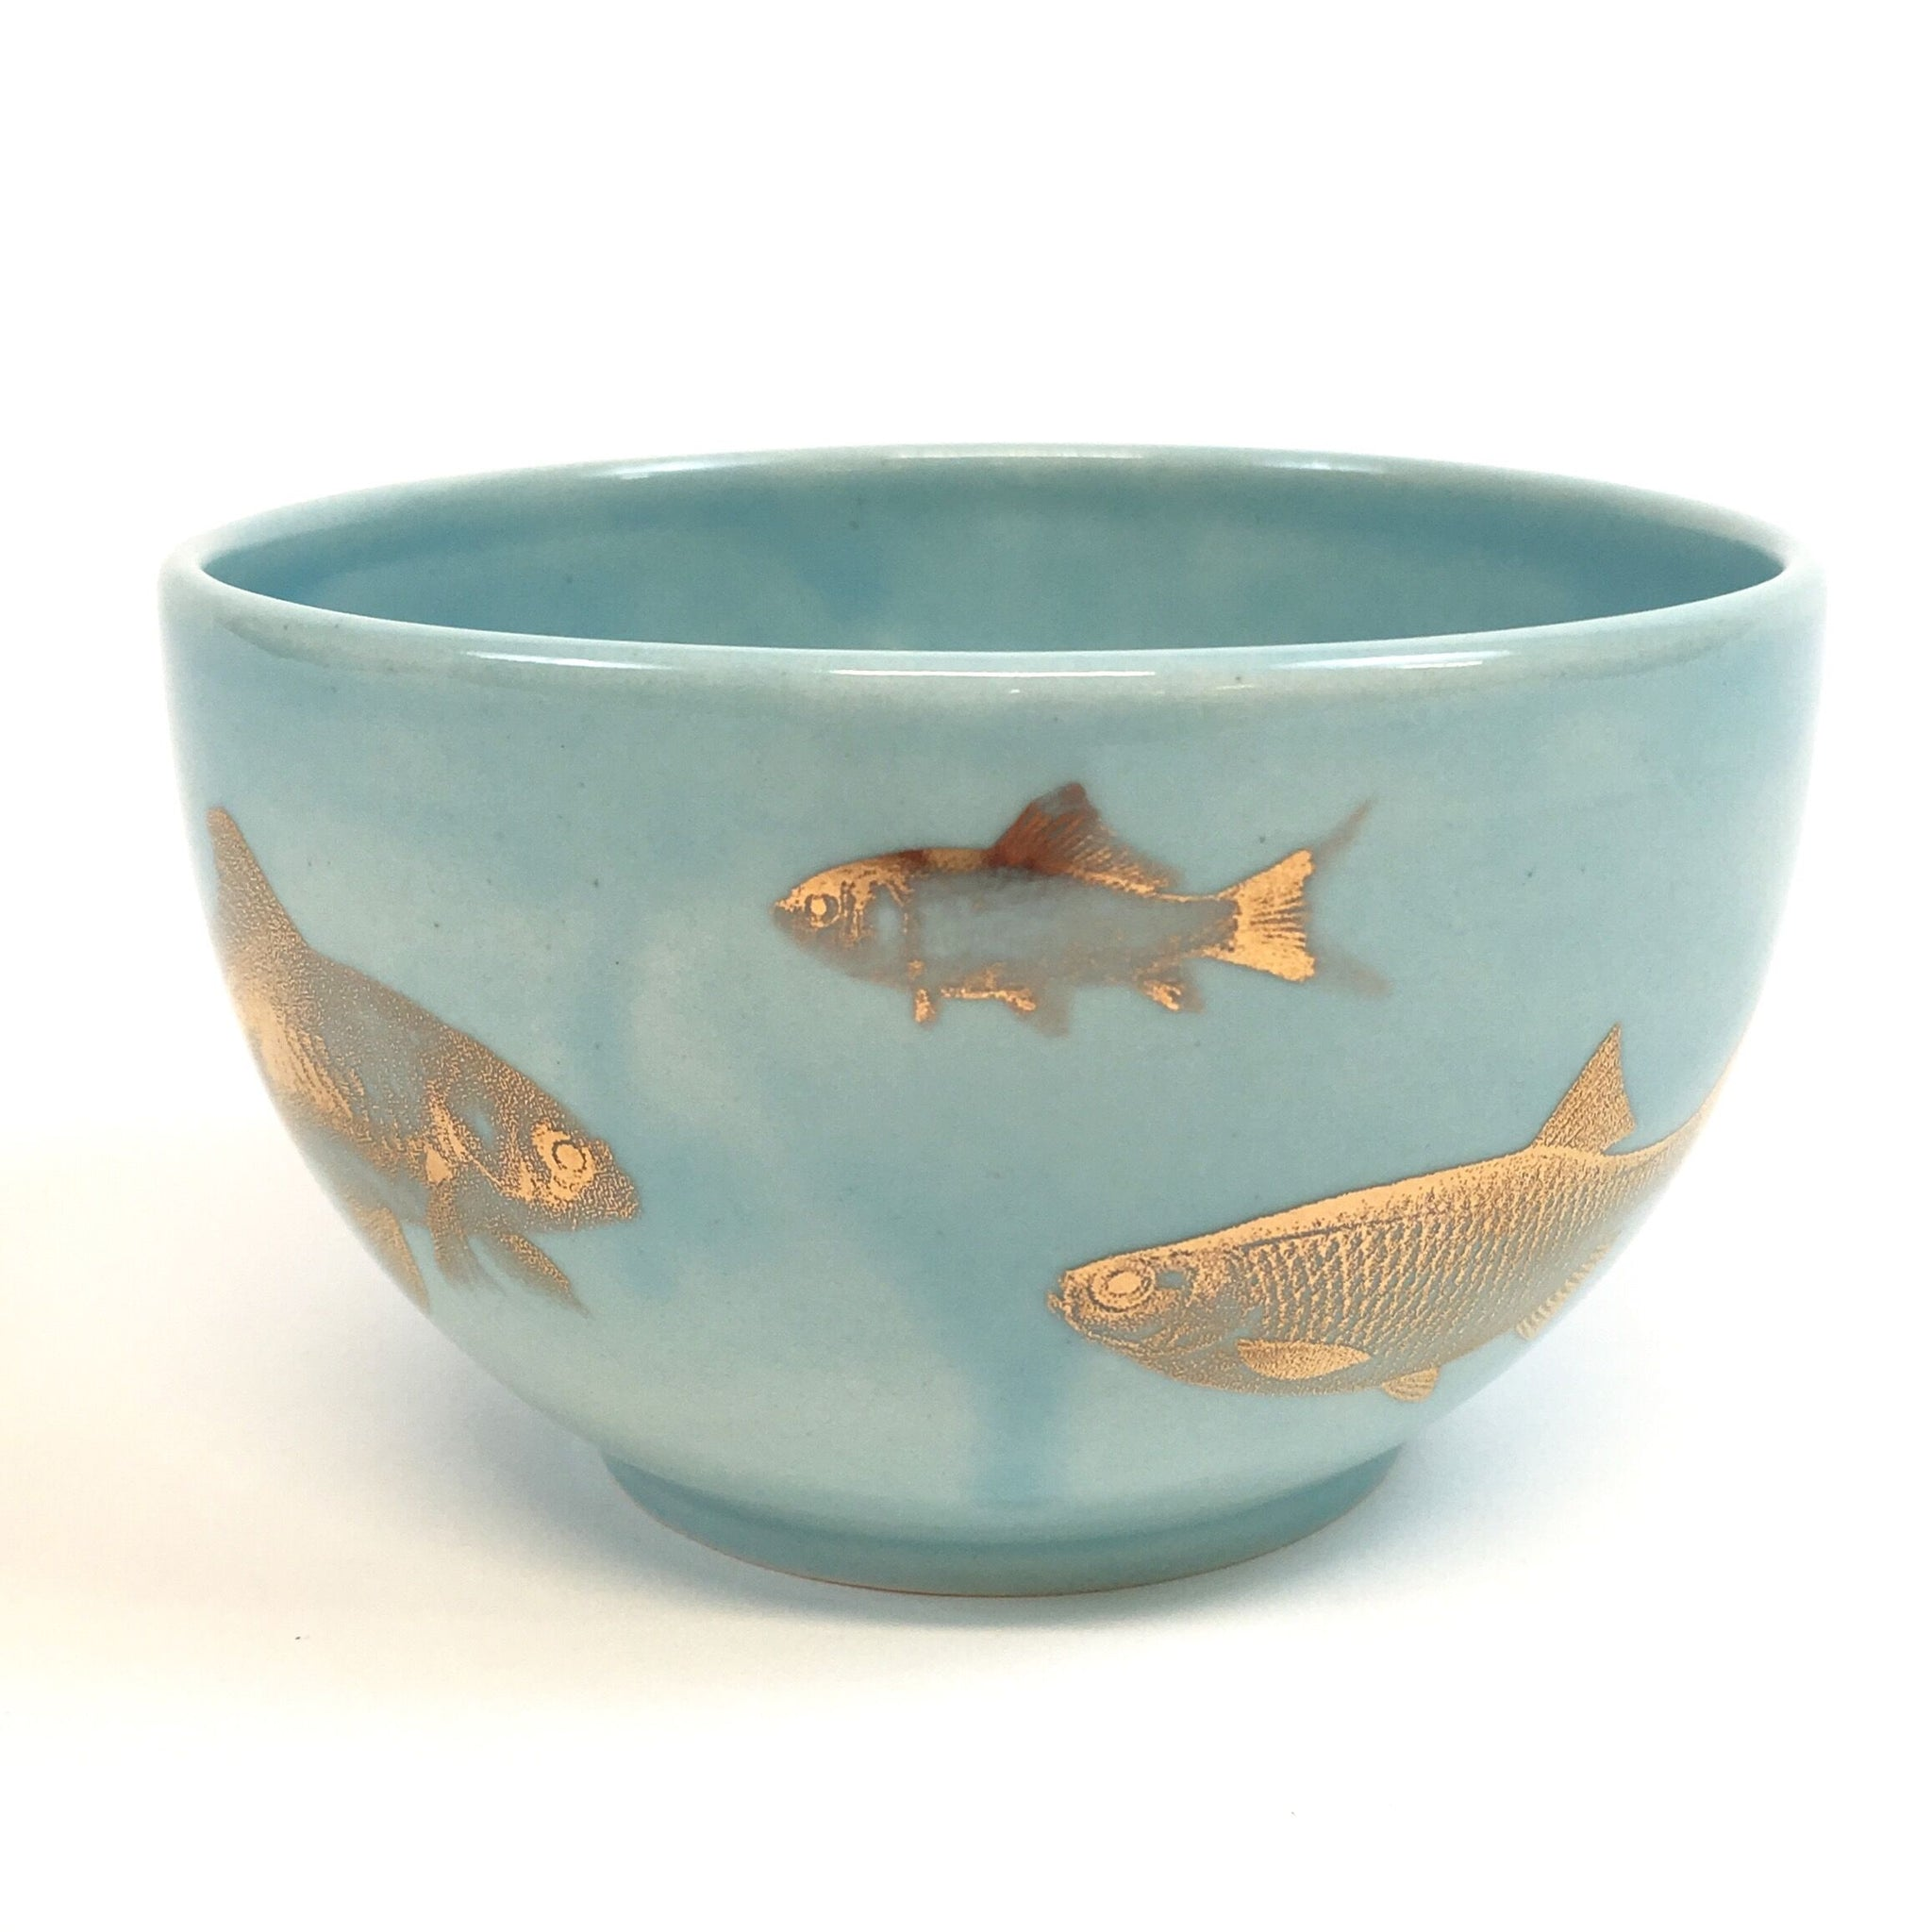 Light blue bowl with golden fish